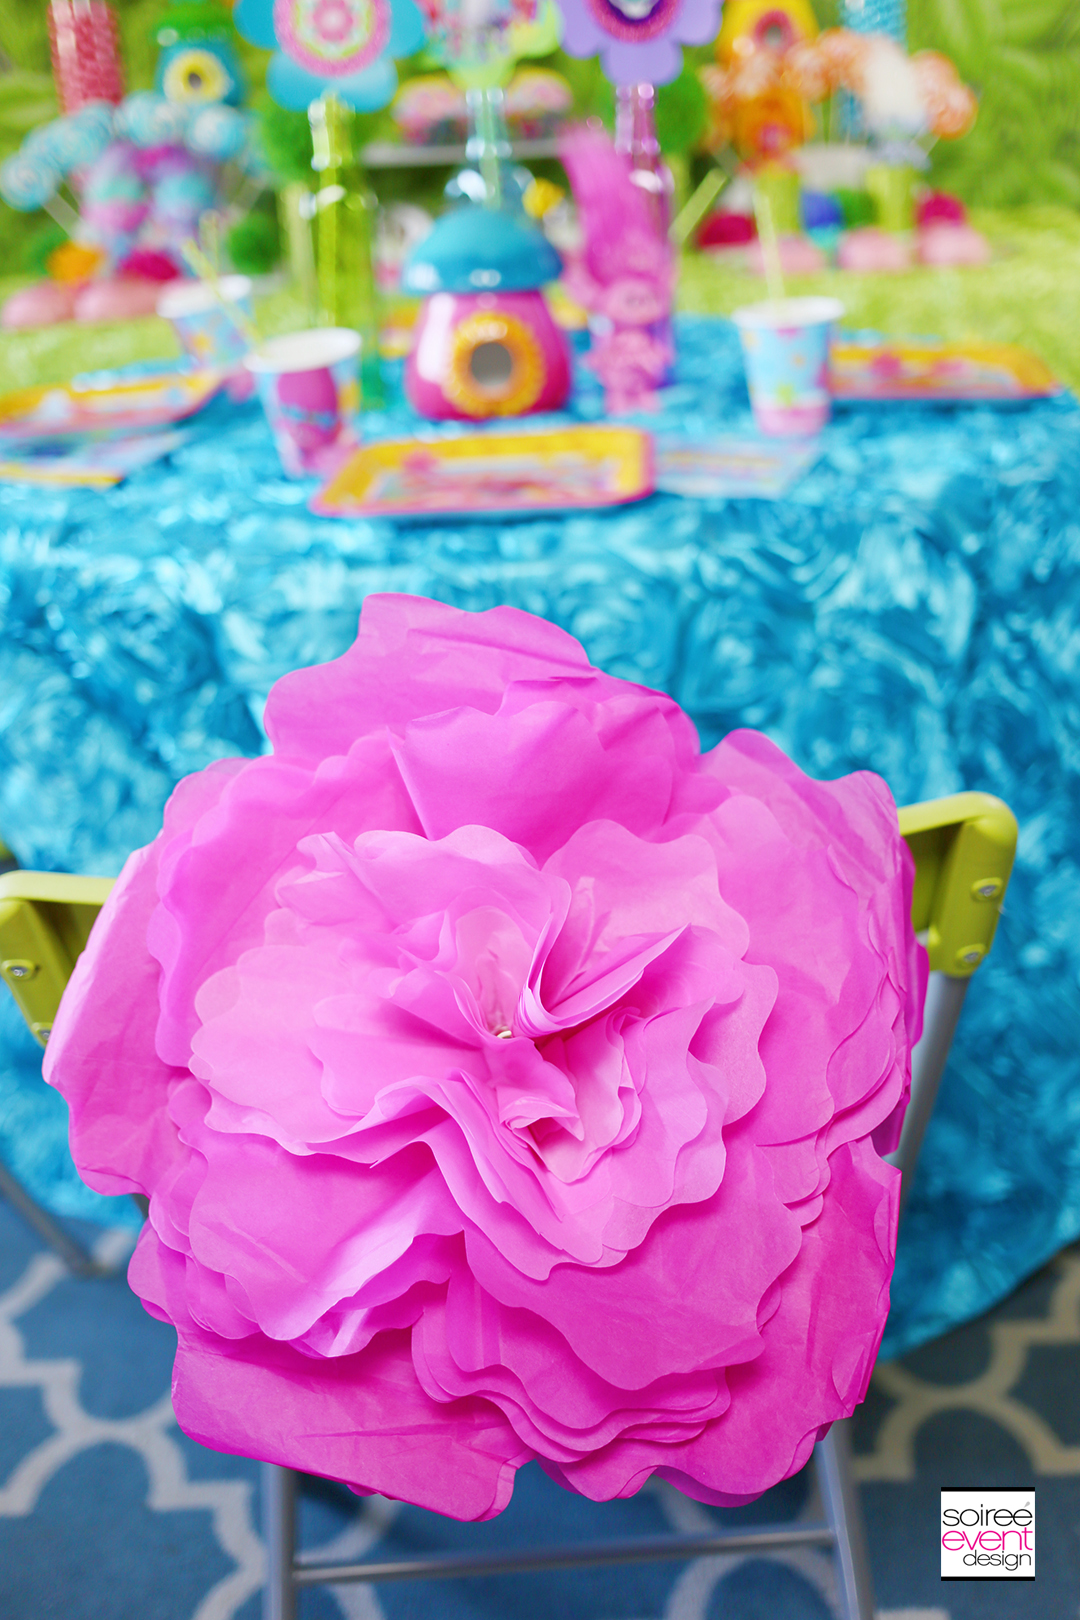 Trolls Party Ideas - Paper Flower Chairbacker